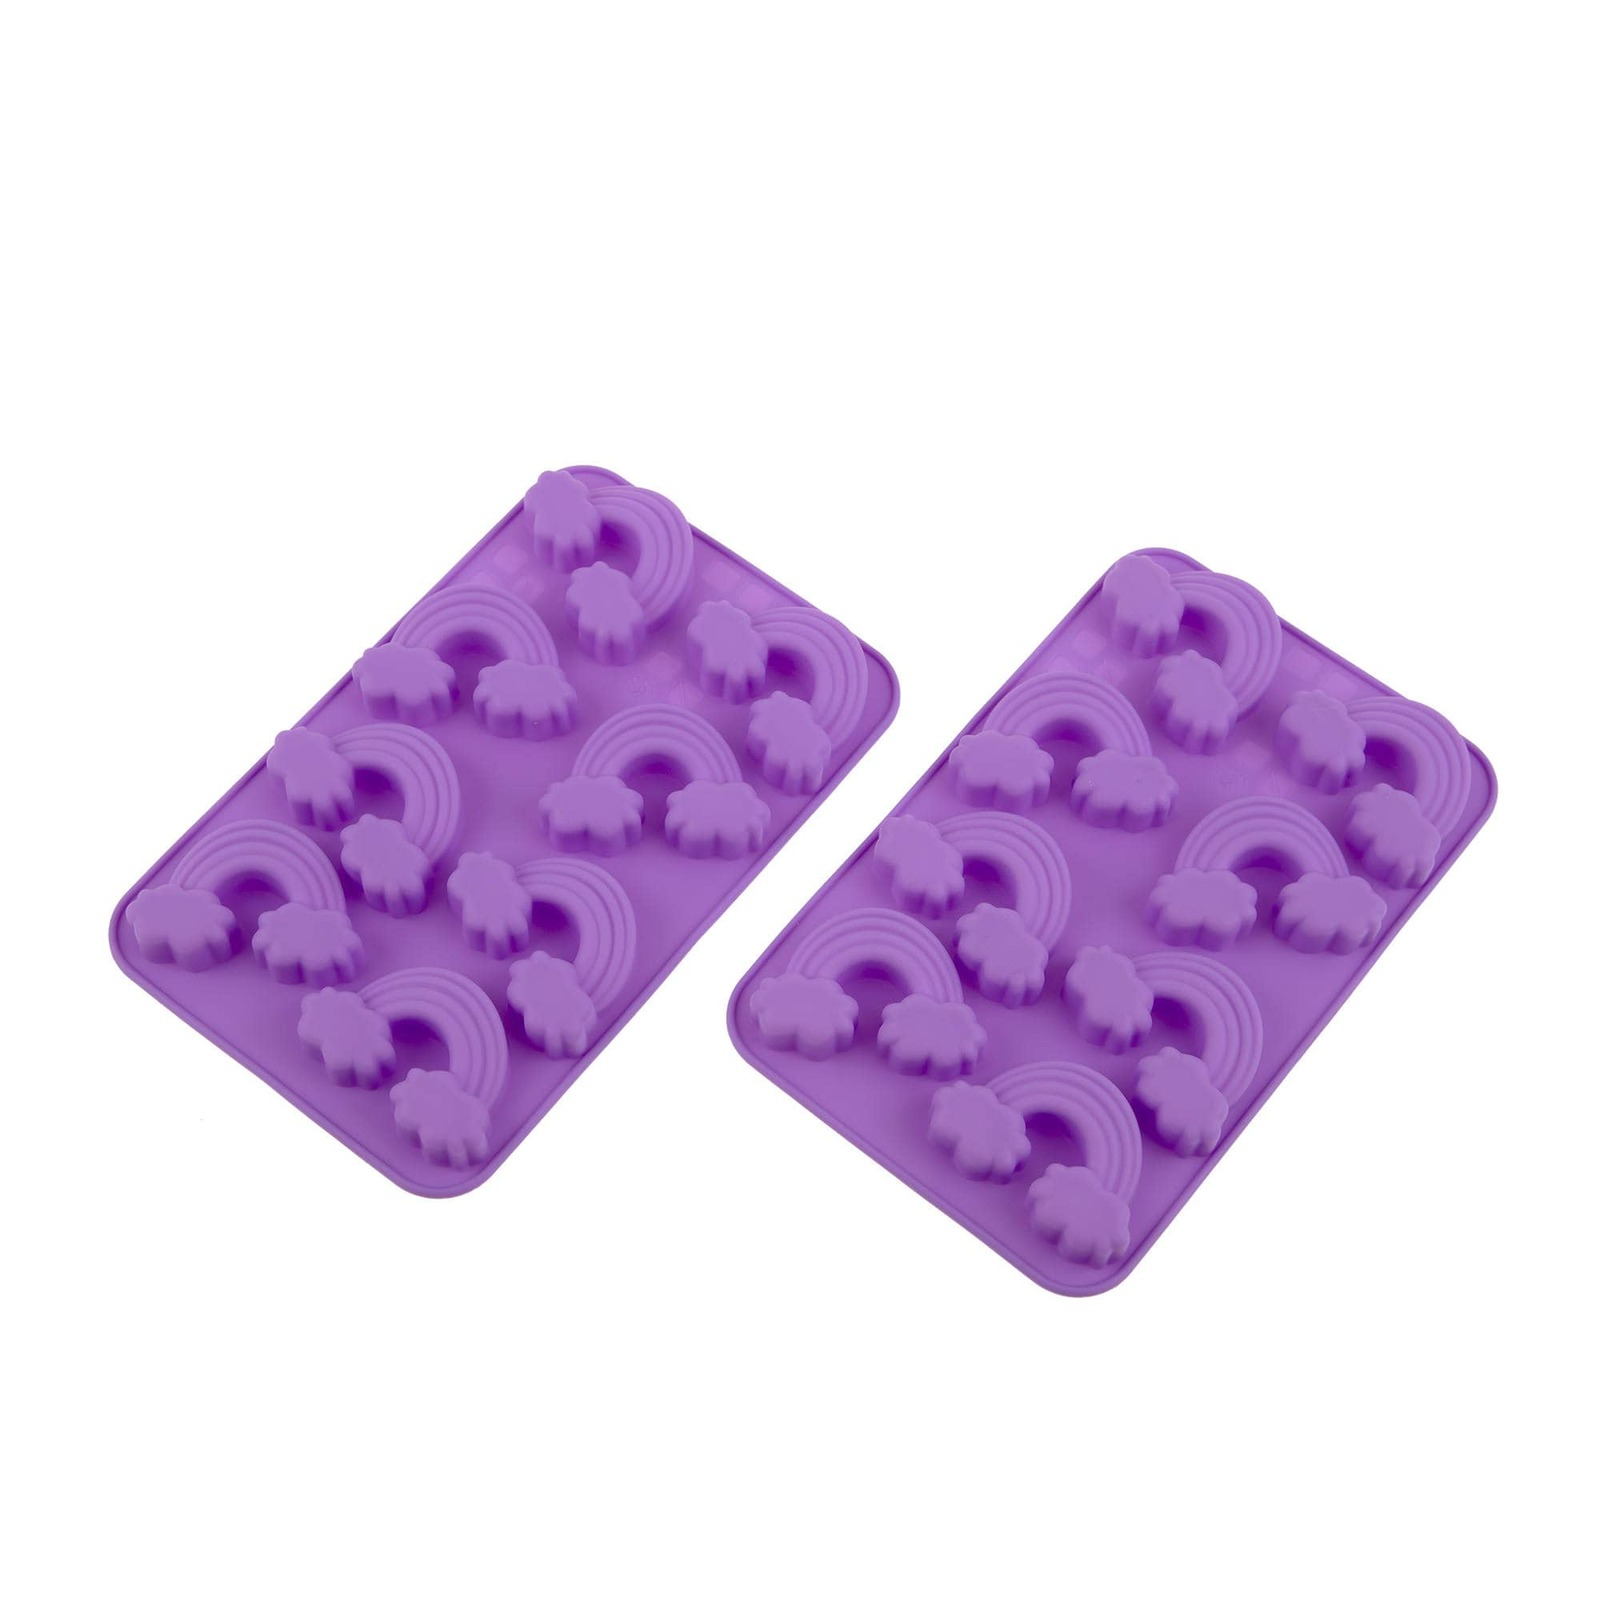 Daily Bake 2pc Rainbow Chocolate Mould Set 8 Cup Purple